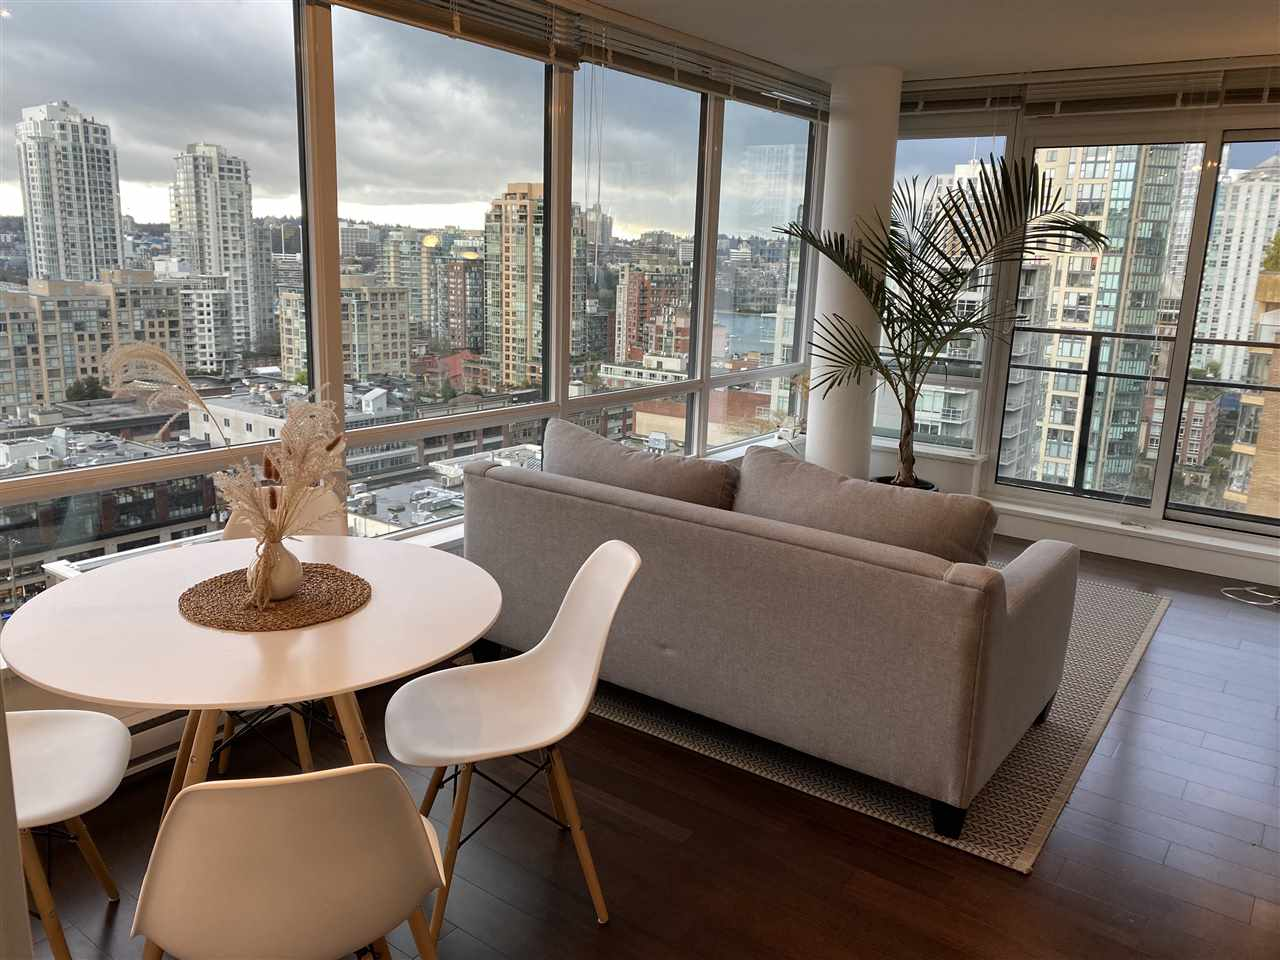 1701 1088 RICHARDS STREET - Yaletown Apartment/Condo for sale, 2 Bedrooms (R2505668) - #1